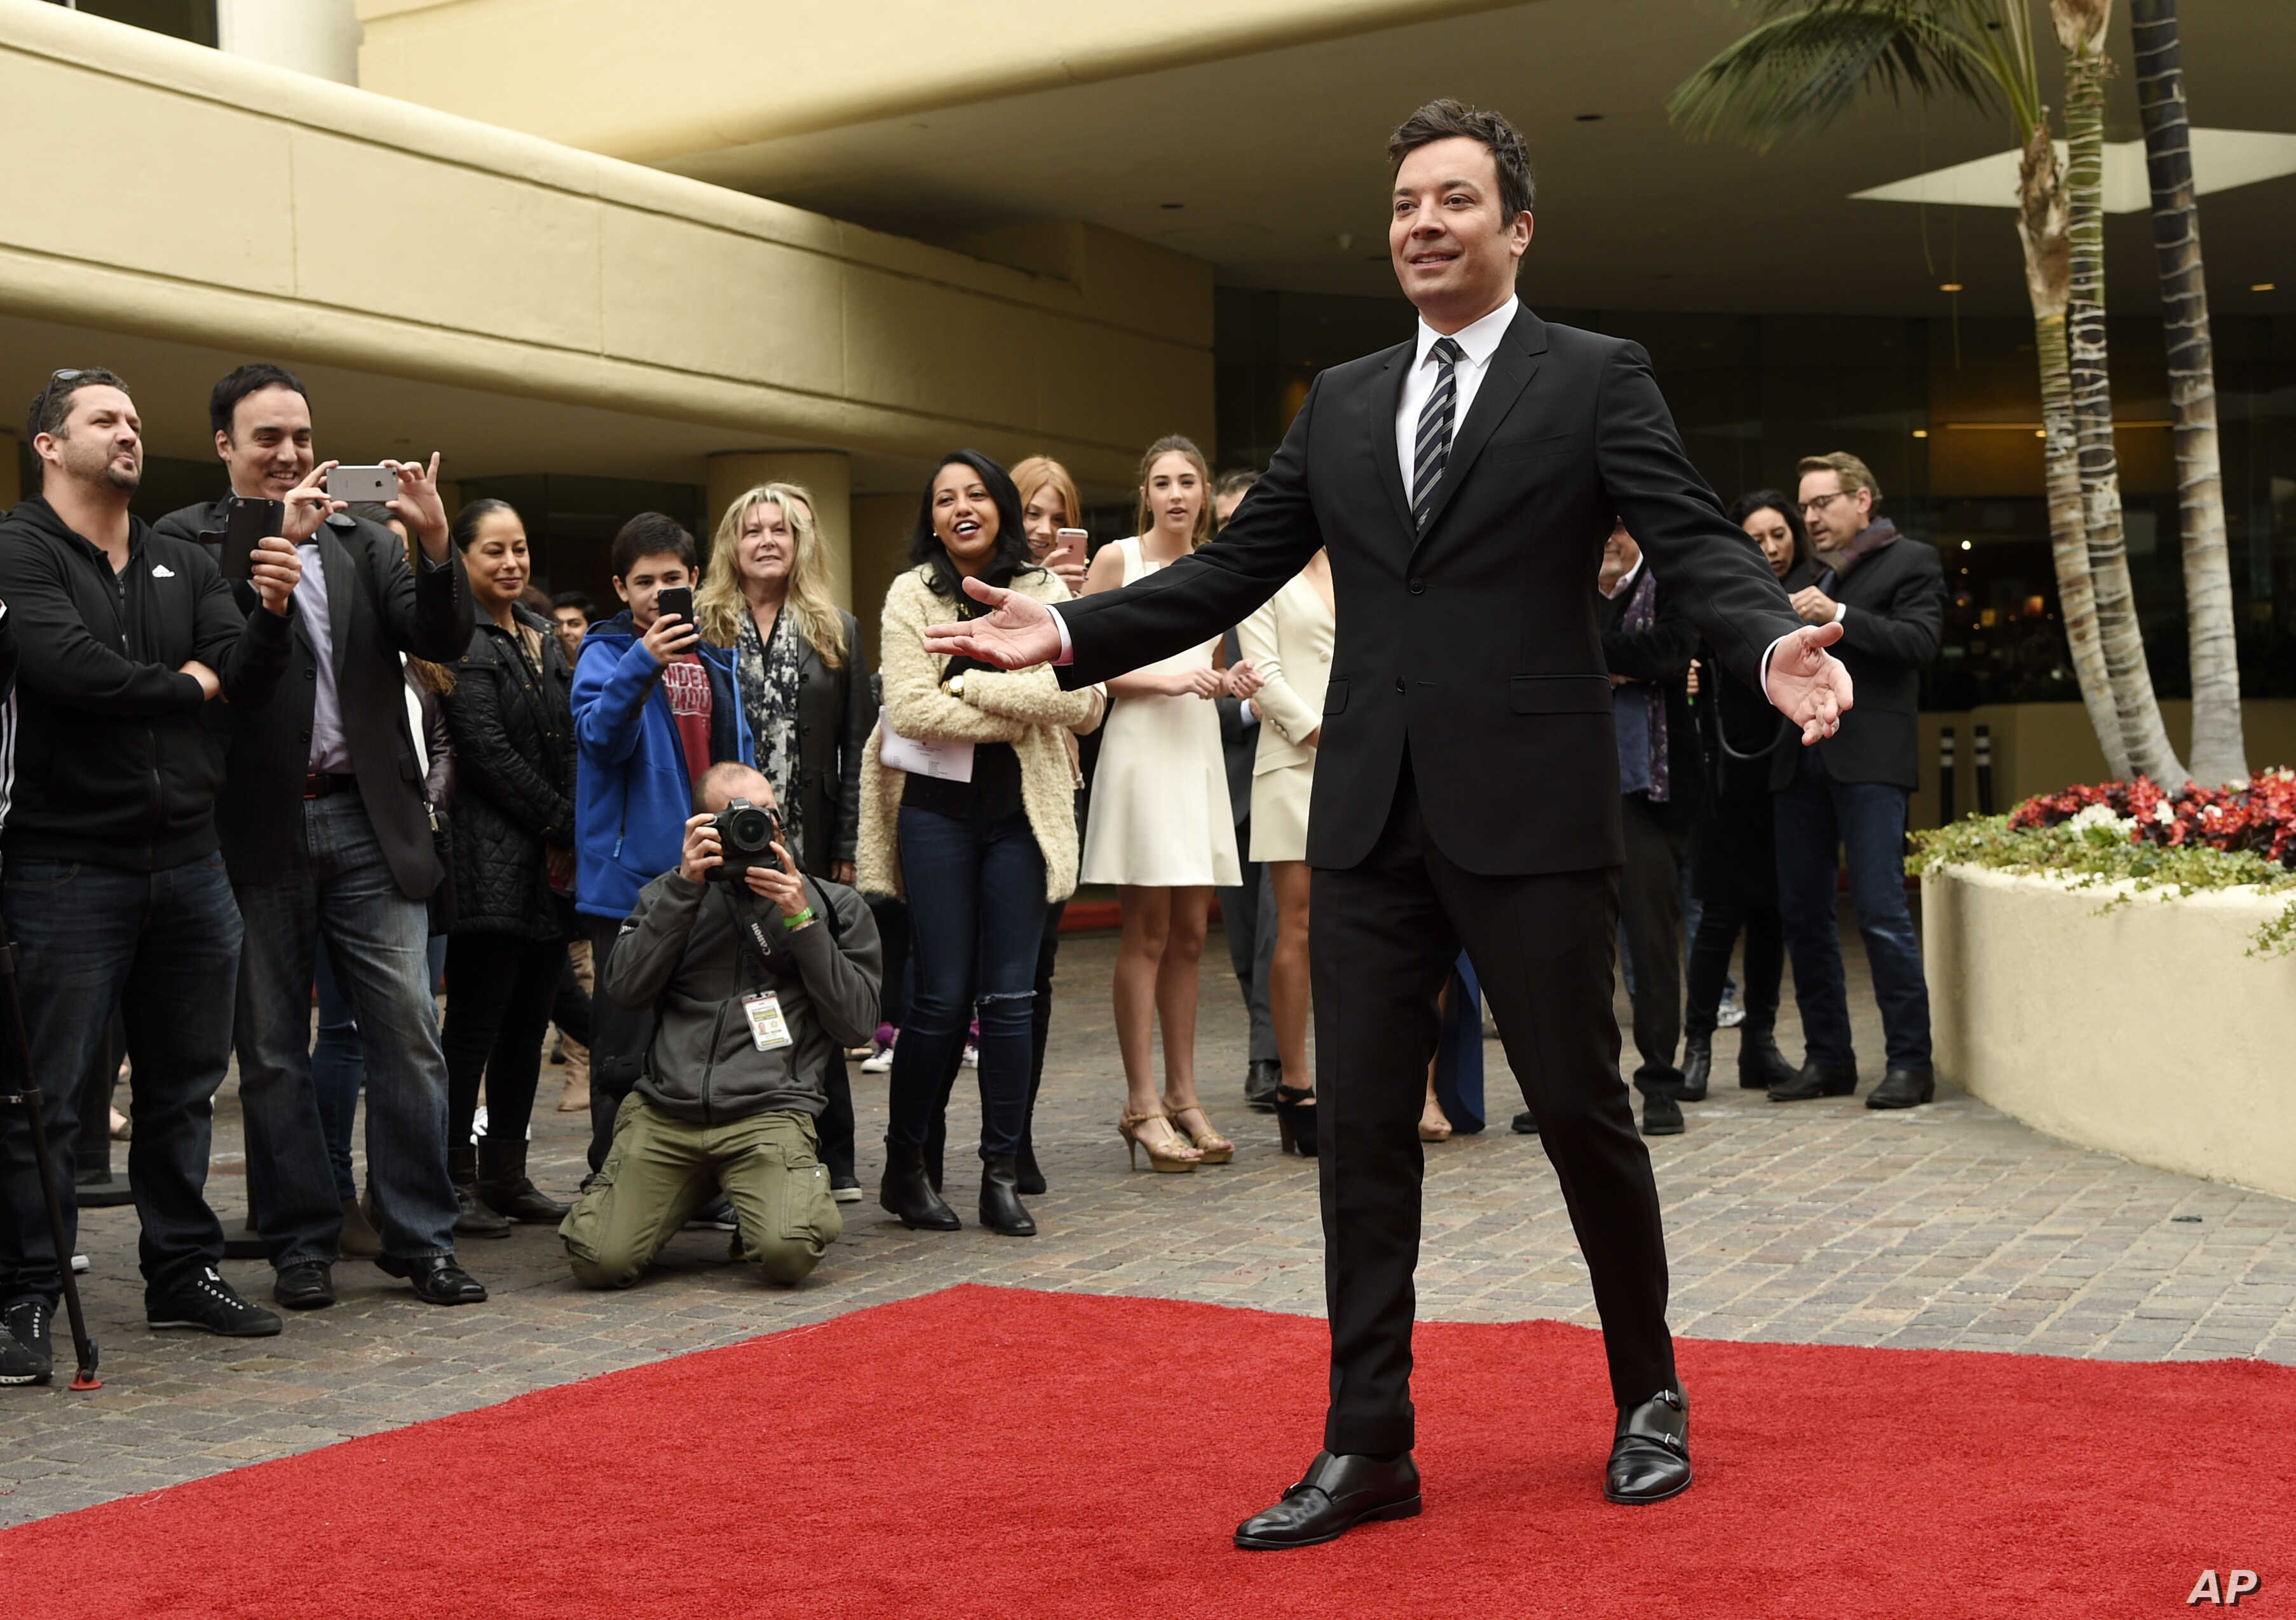 Jimmy Fallon, host of this Sunday's 74th Annual Golden Globe Awards, poses after rolling out the red carpet during Golden Globe Awards Preview Day at the Beverly Hilton on Wednesday, Jan. 4, 2017, in Beverly Hills, Calif.